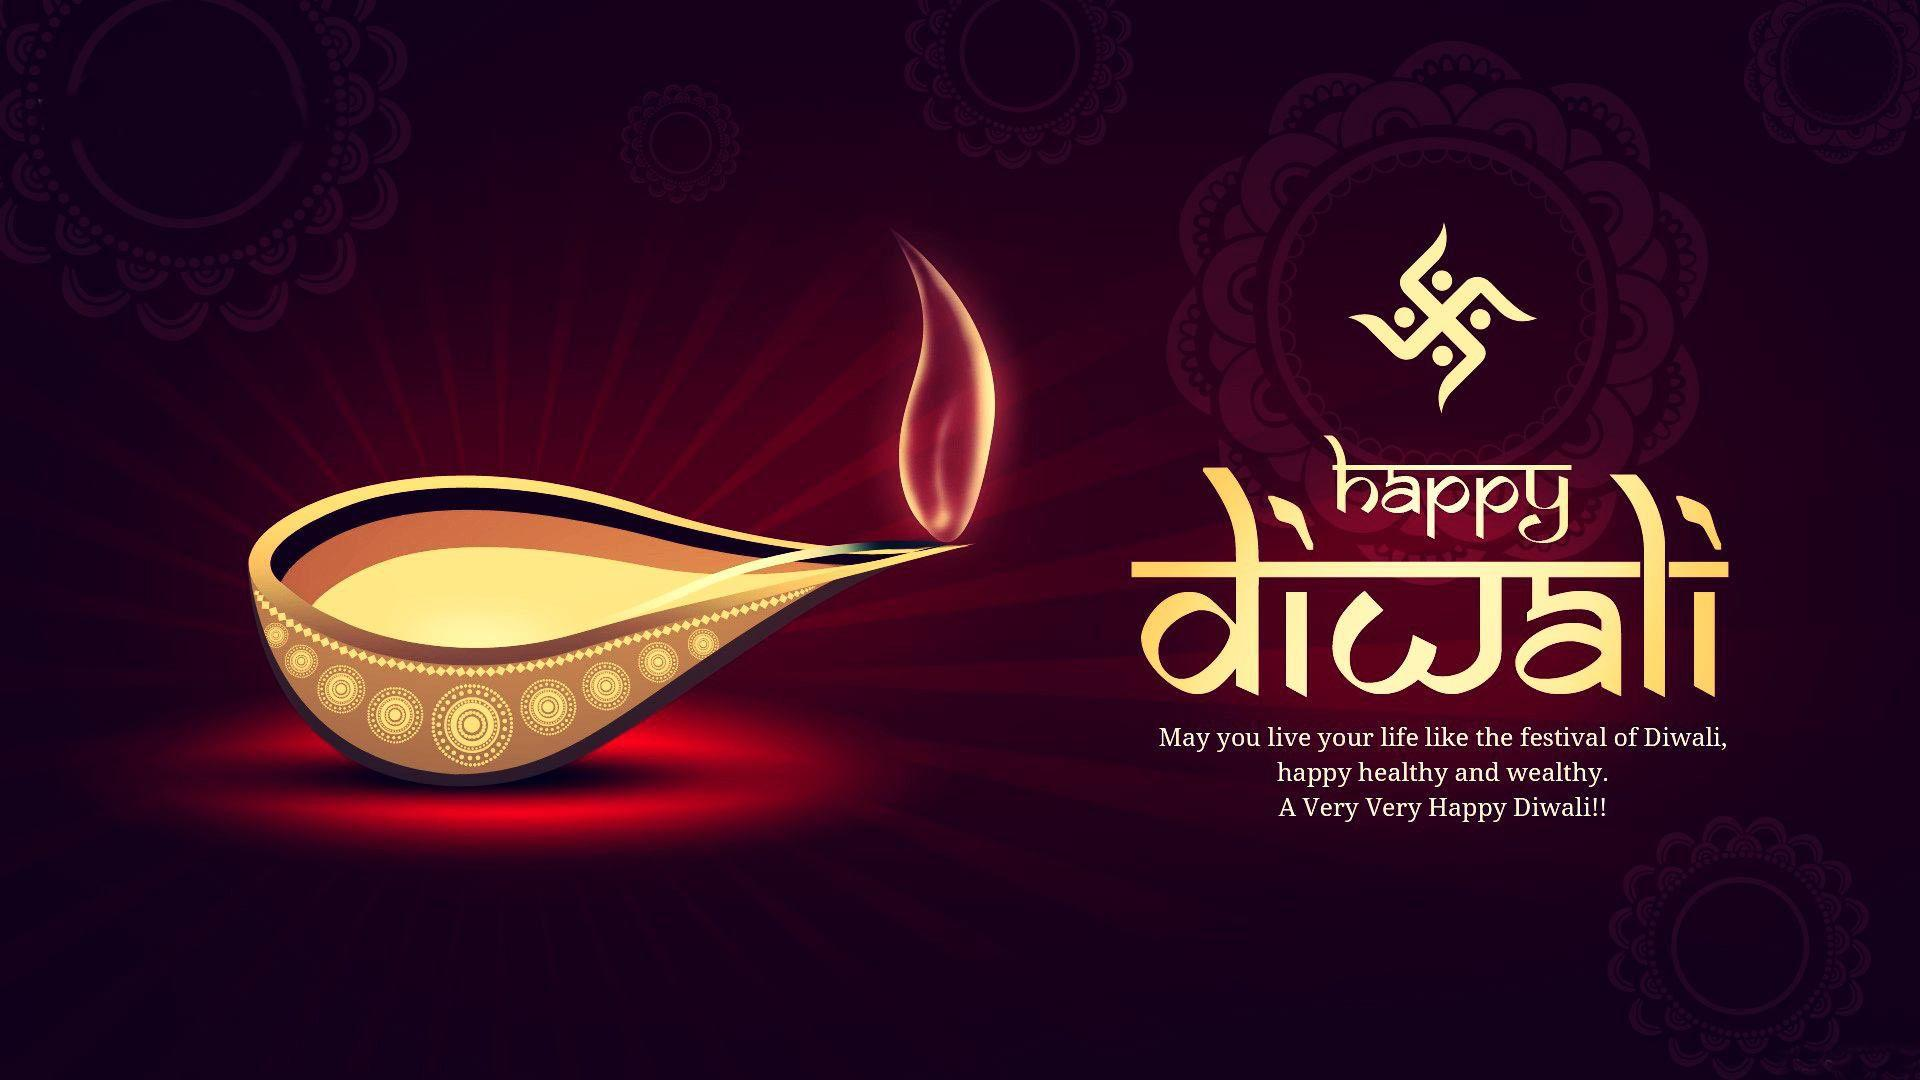 Happy Diwali 2017 Wallpapers, Photo & Image: Deepavali2016